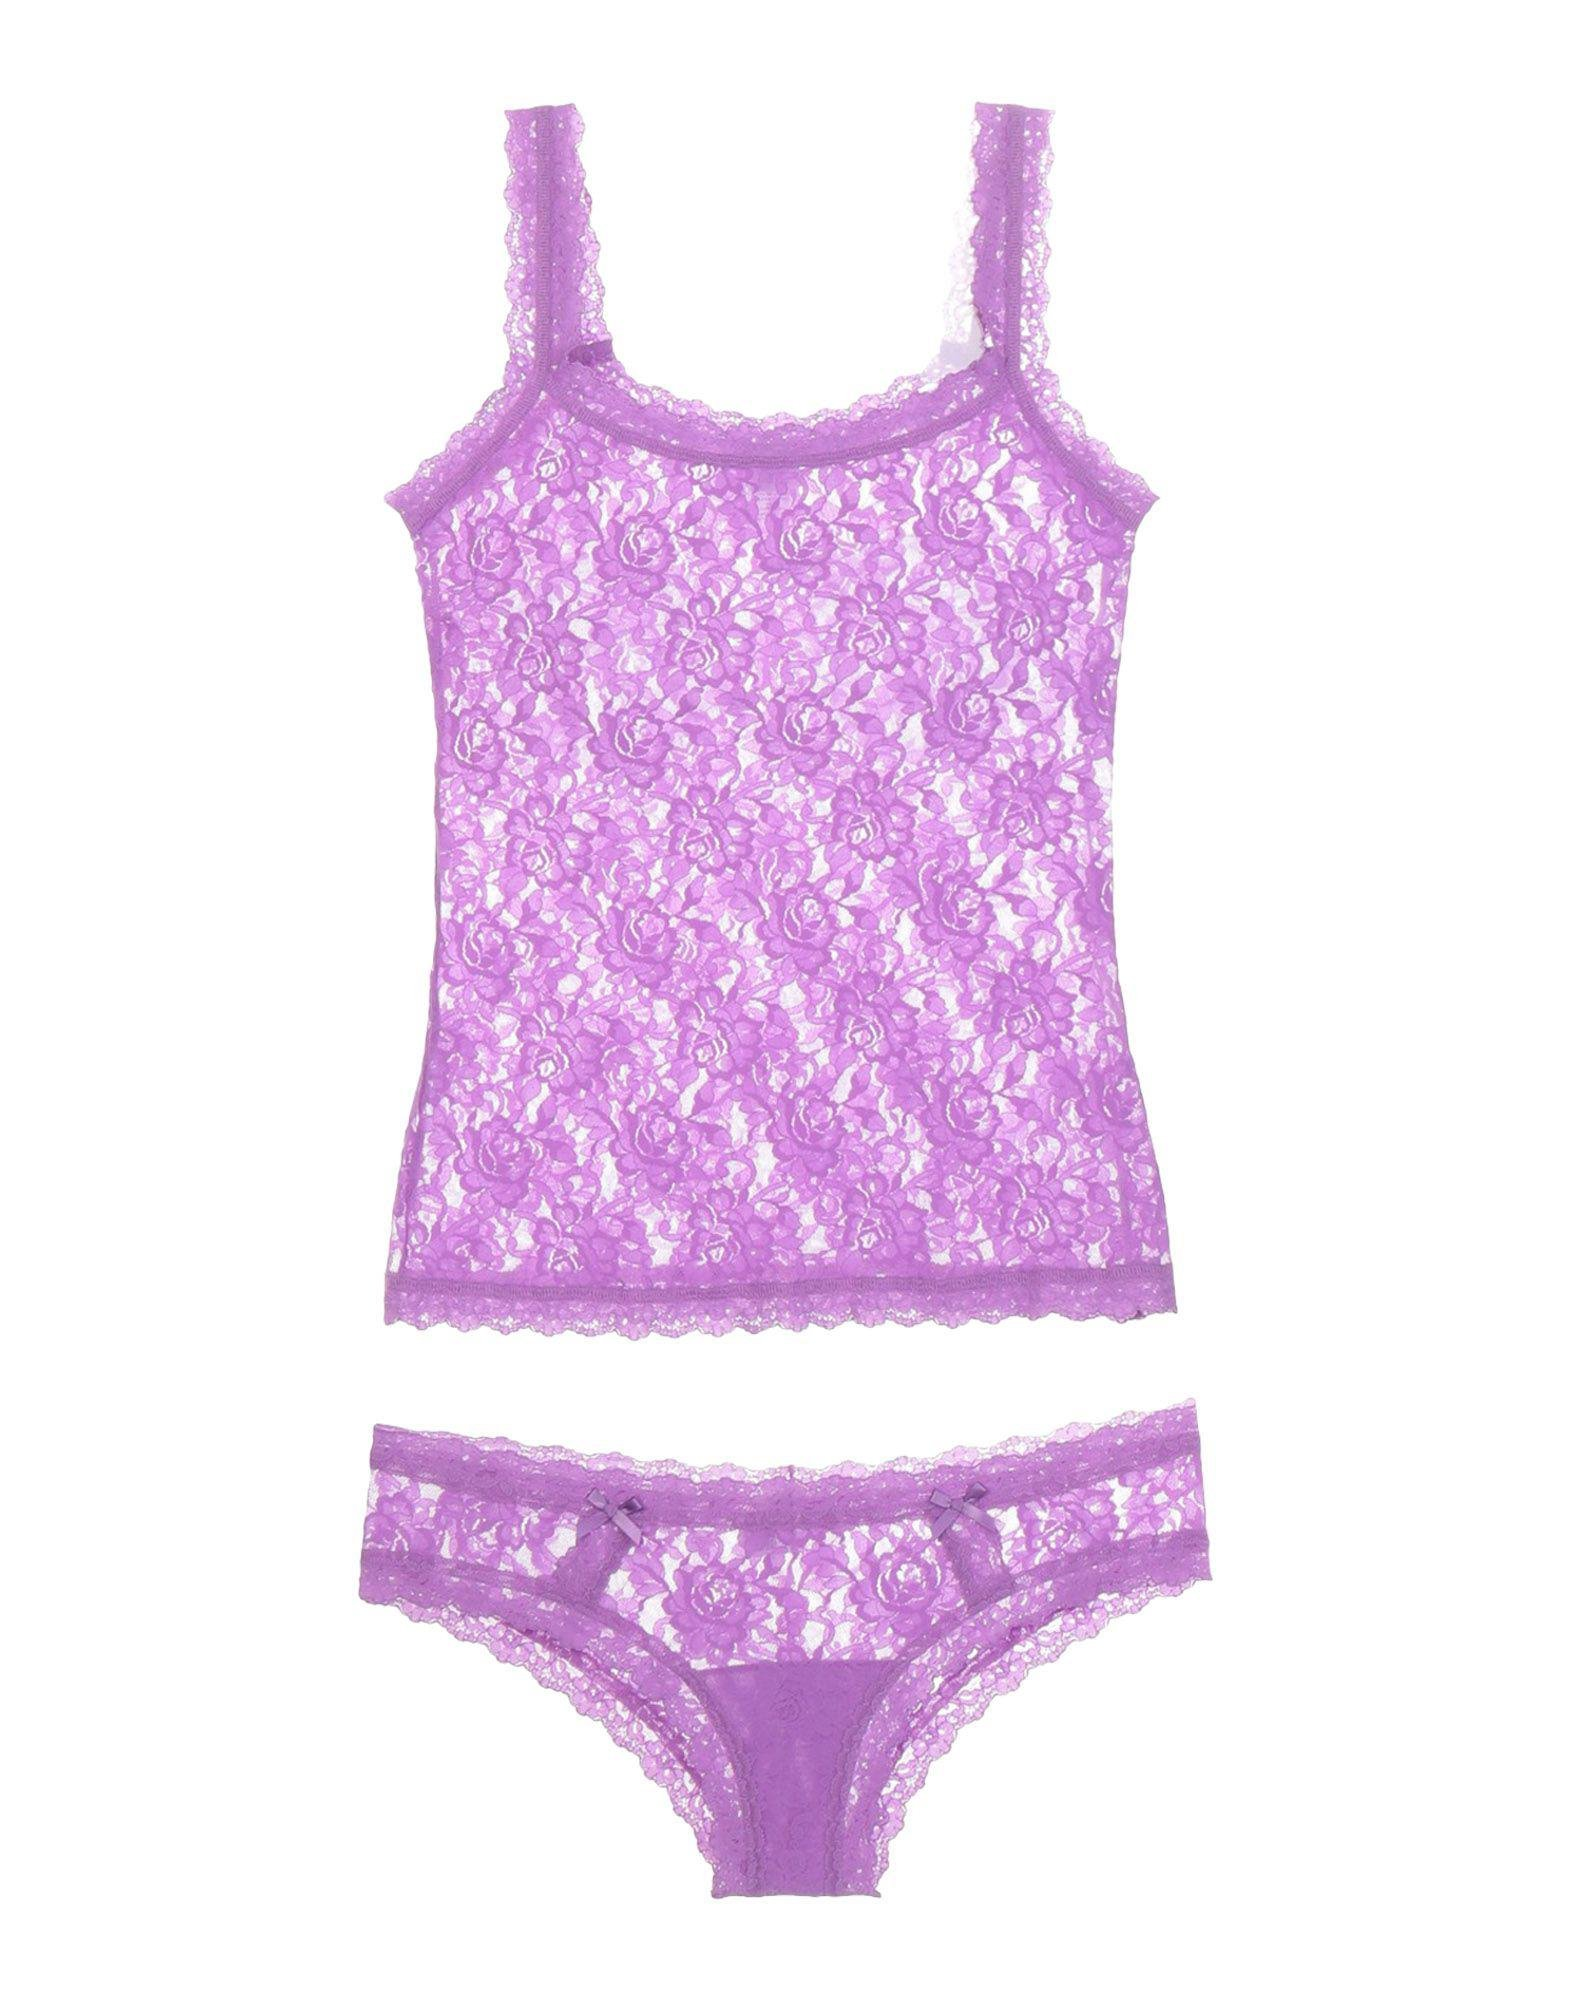 Lyst Underwear In Sets Hanky Purple Panky ON0nPX8wk